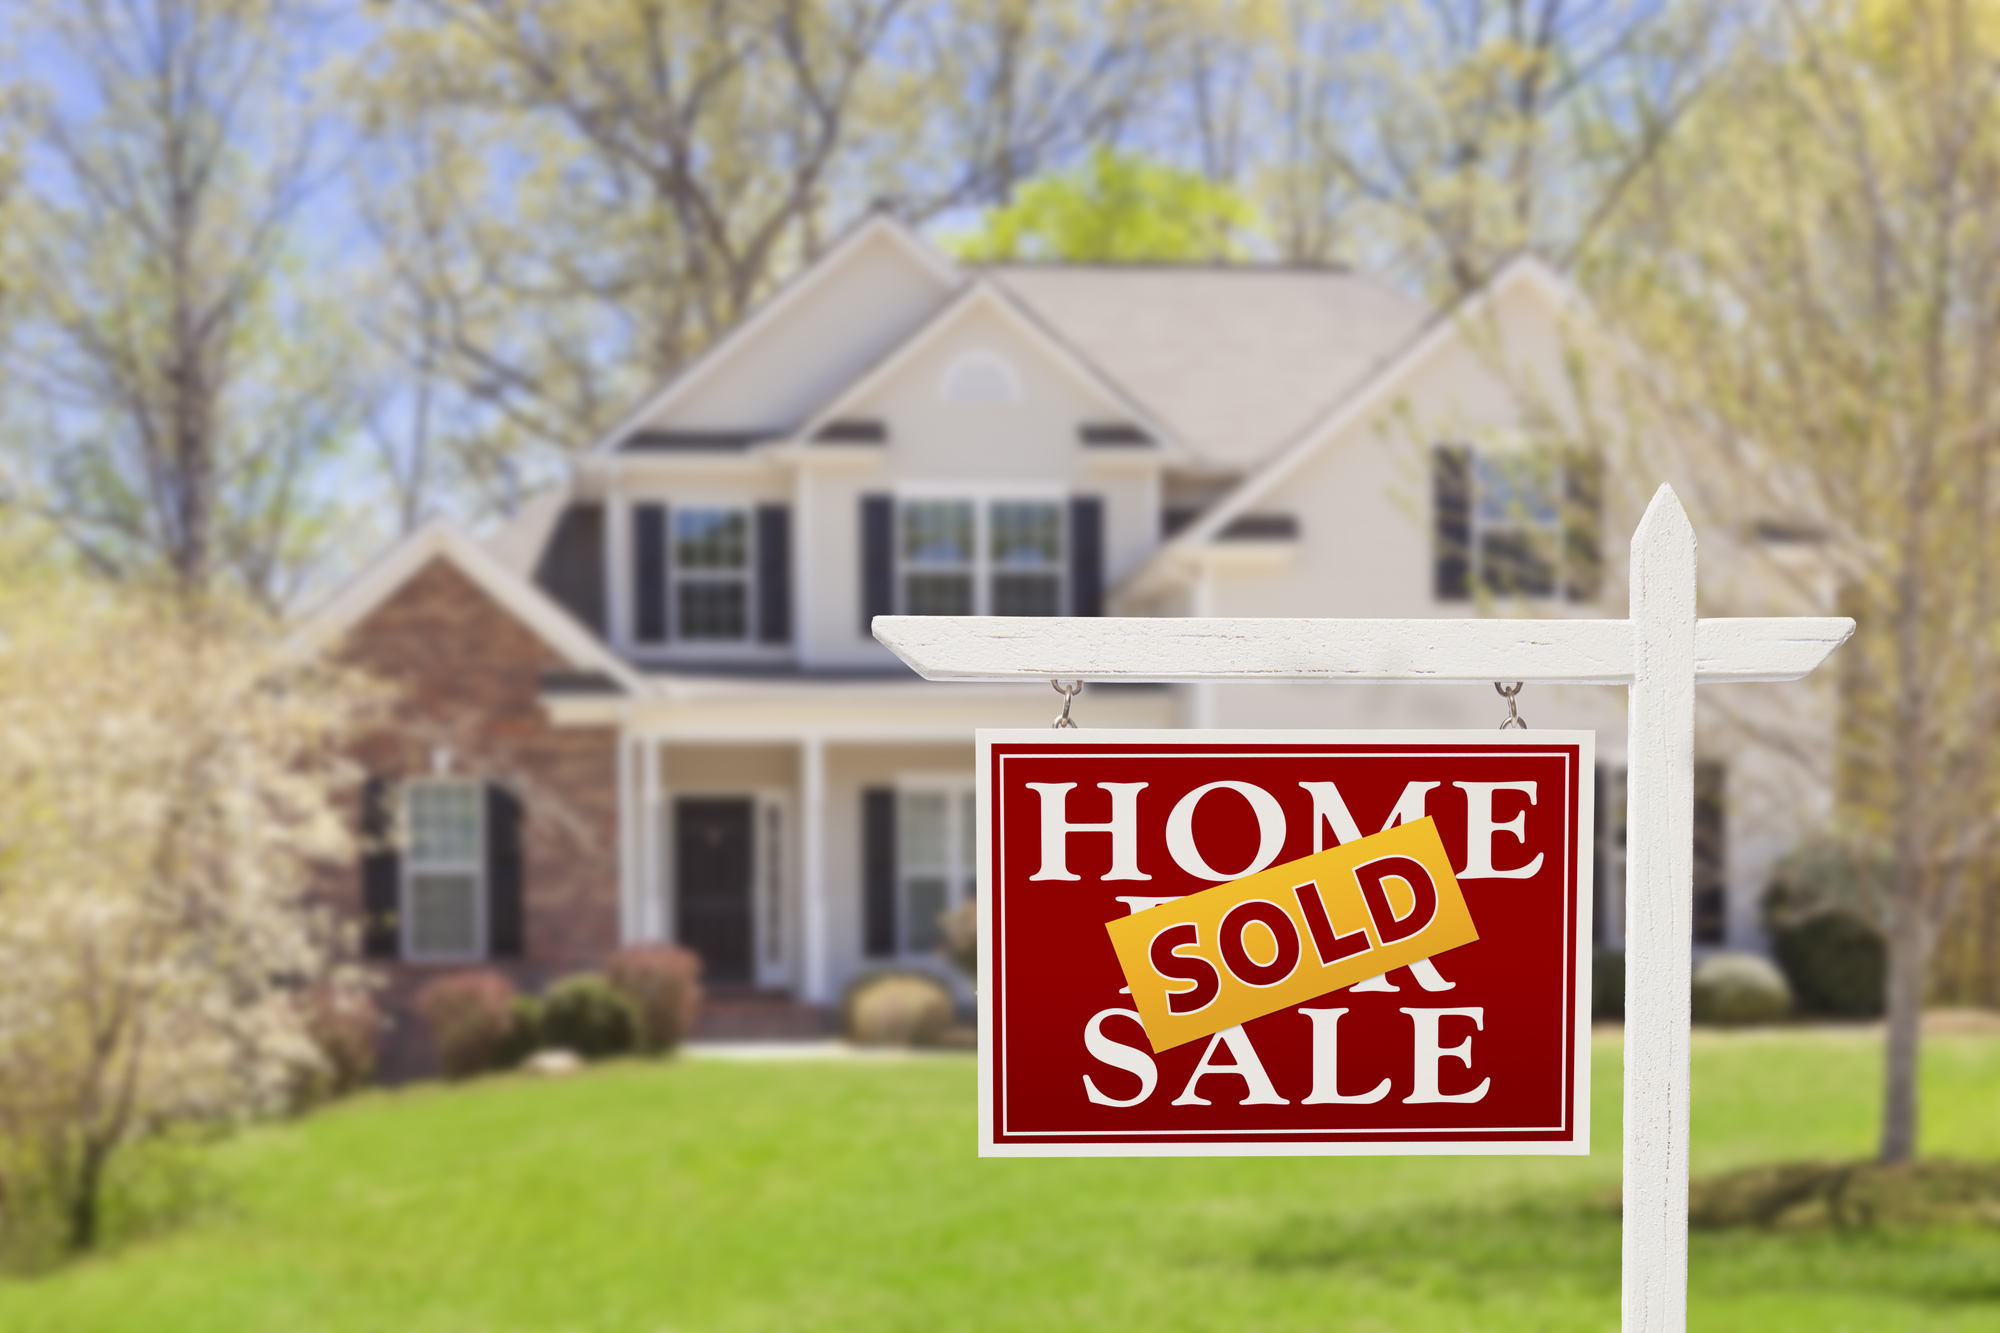 5 Reasons You Need an Experienced Real Estate Agent When Buying a